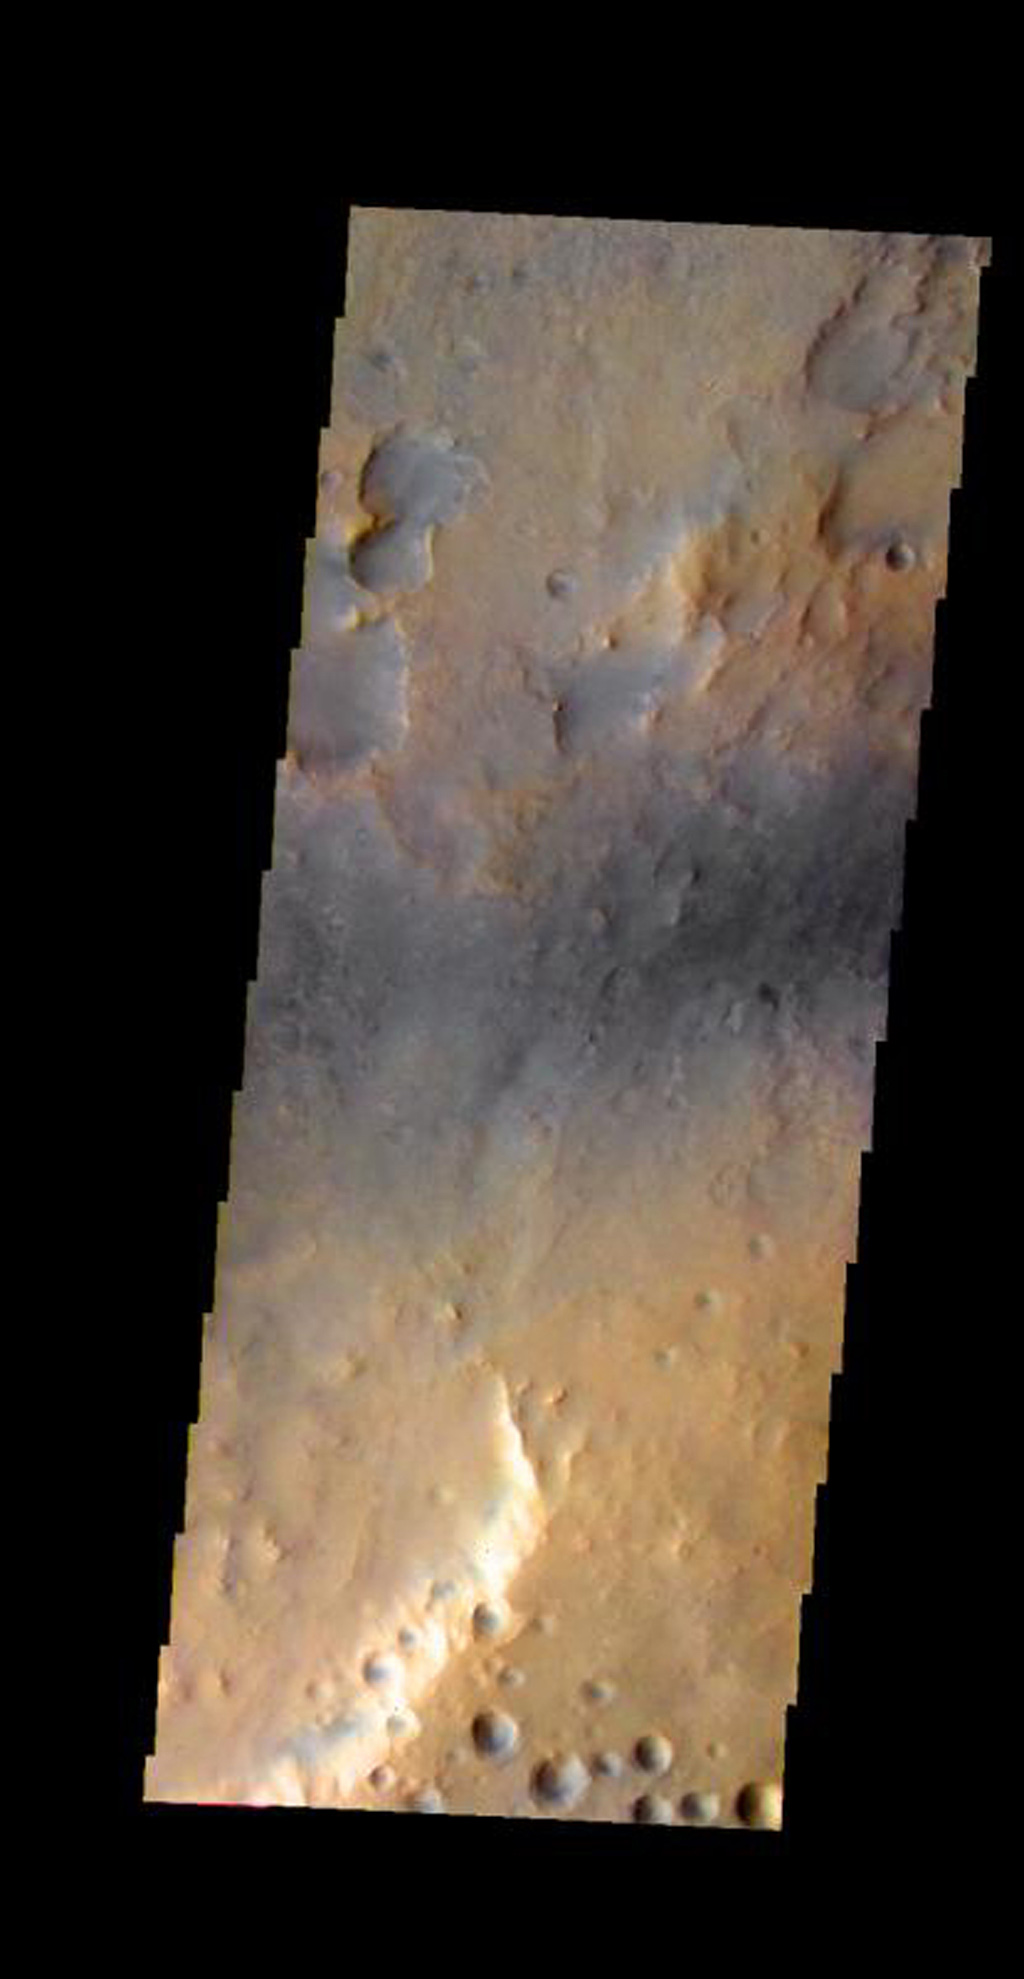 This image shows part of the Nili Fossae region on Mars as seen by NASA's 2001 Mars Odyssey spacecraft.